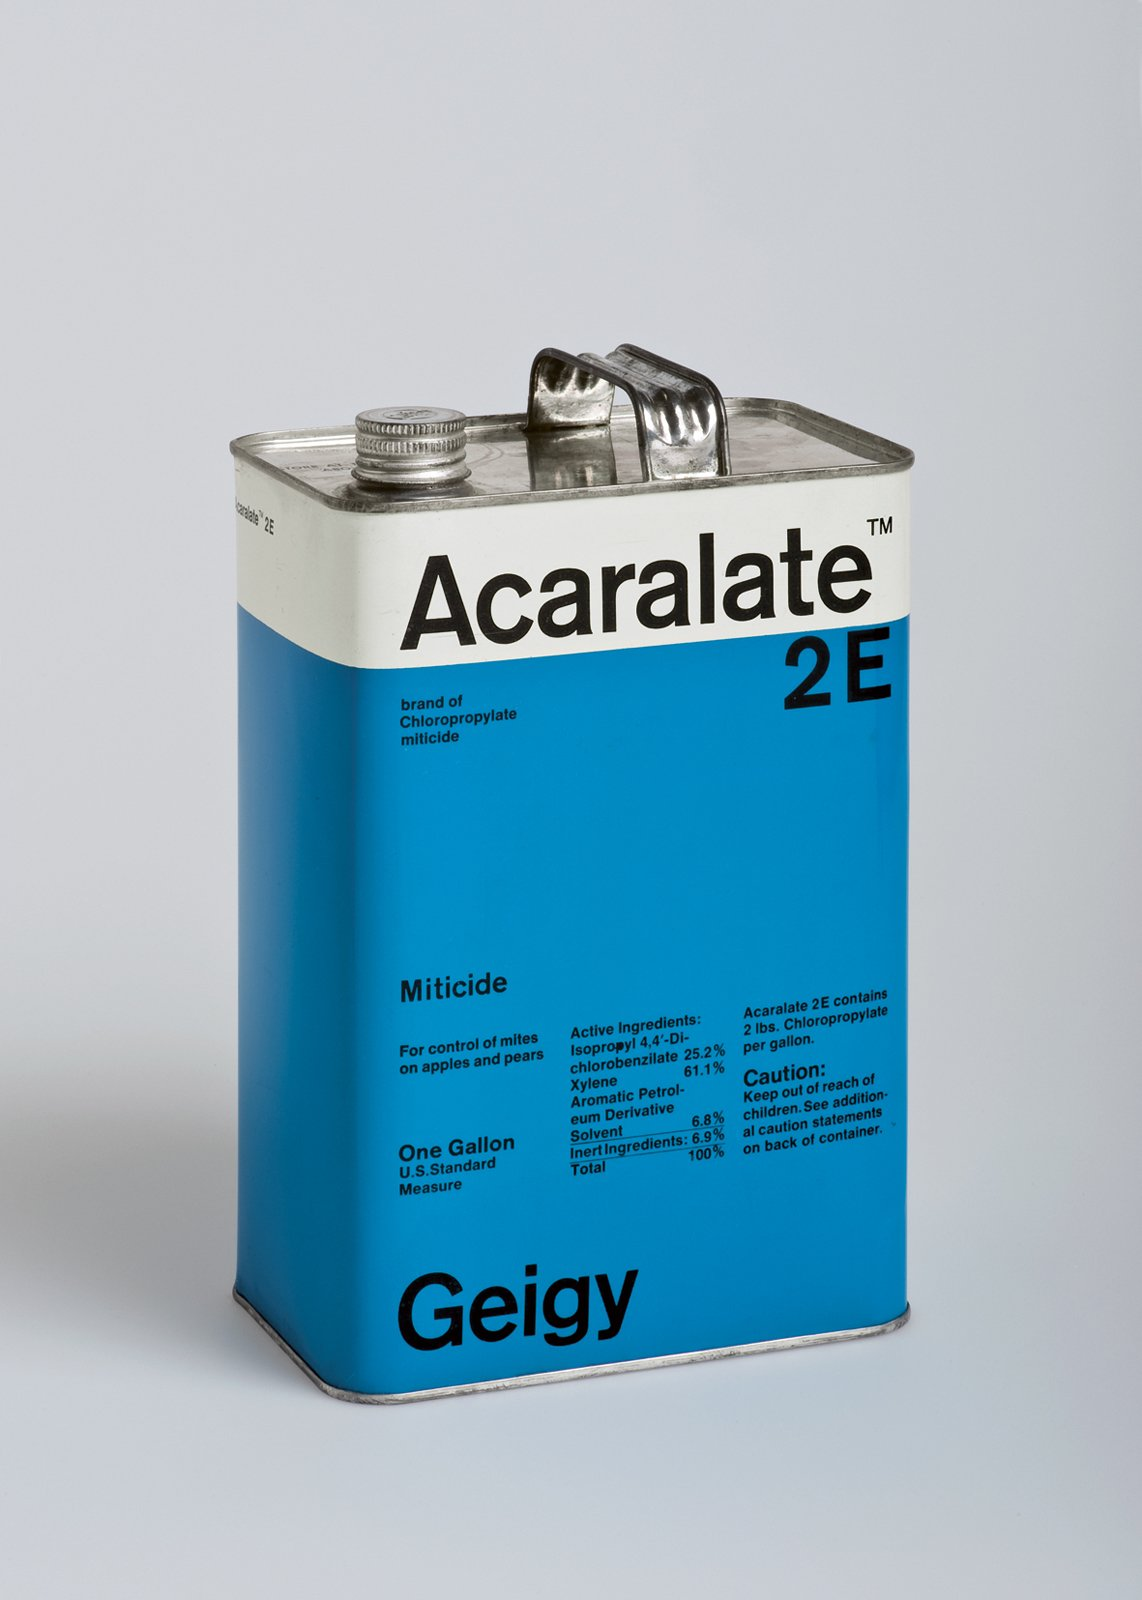 This Acaralete 2E cannister by Markus Löw played with the same motif found in Schmid's medicine packaging.  Geigy's Graphic Design  by Dwell